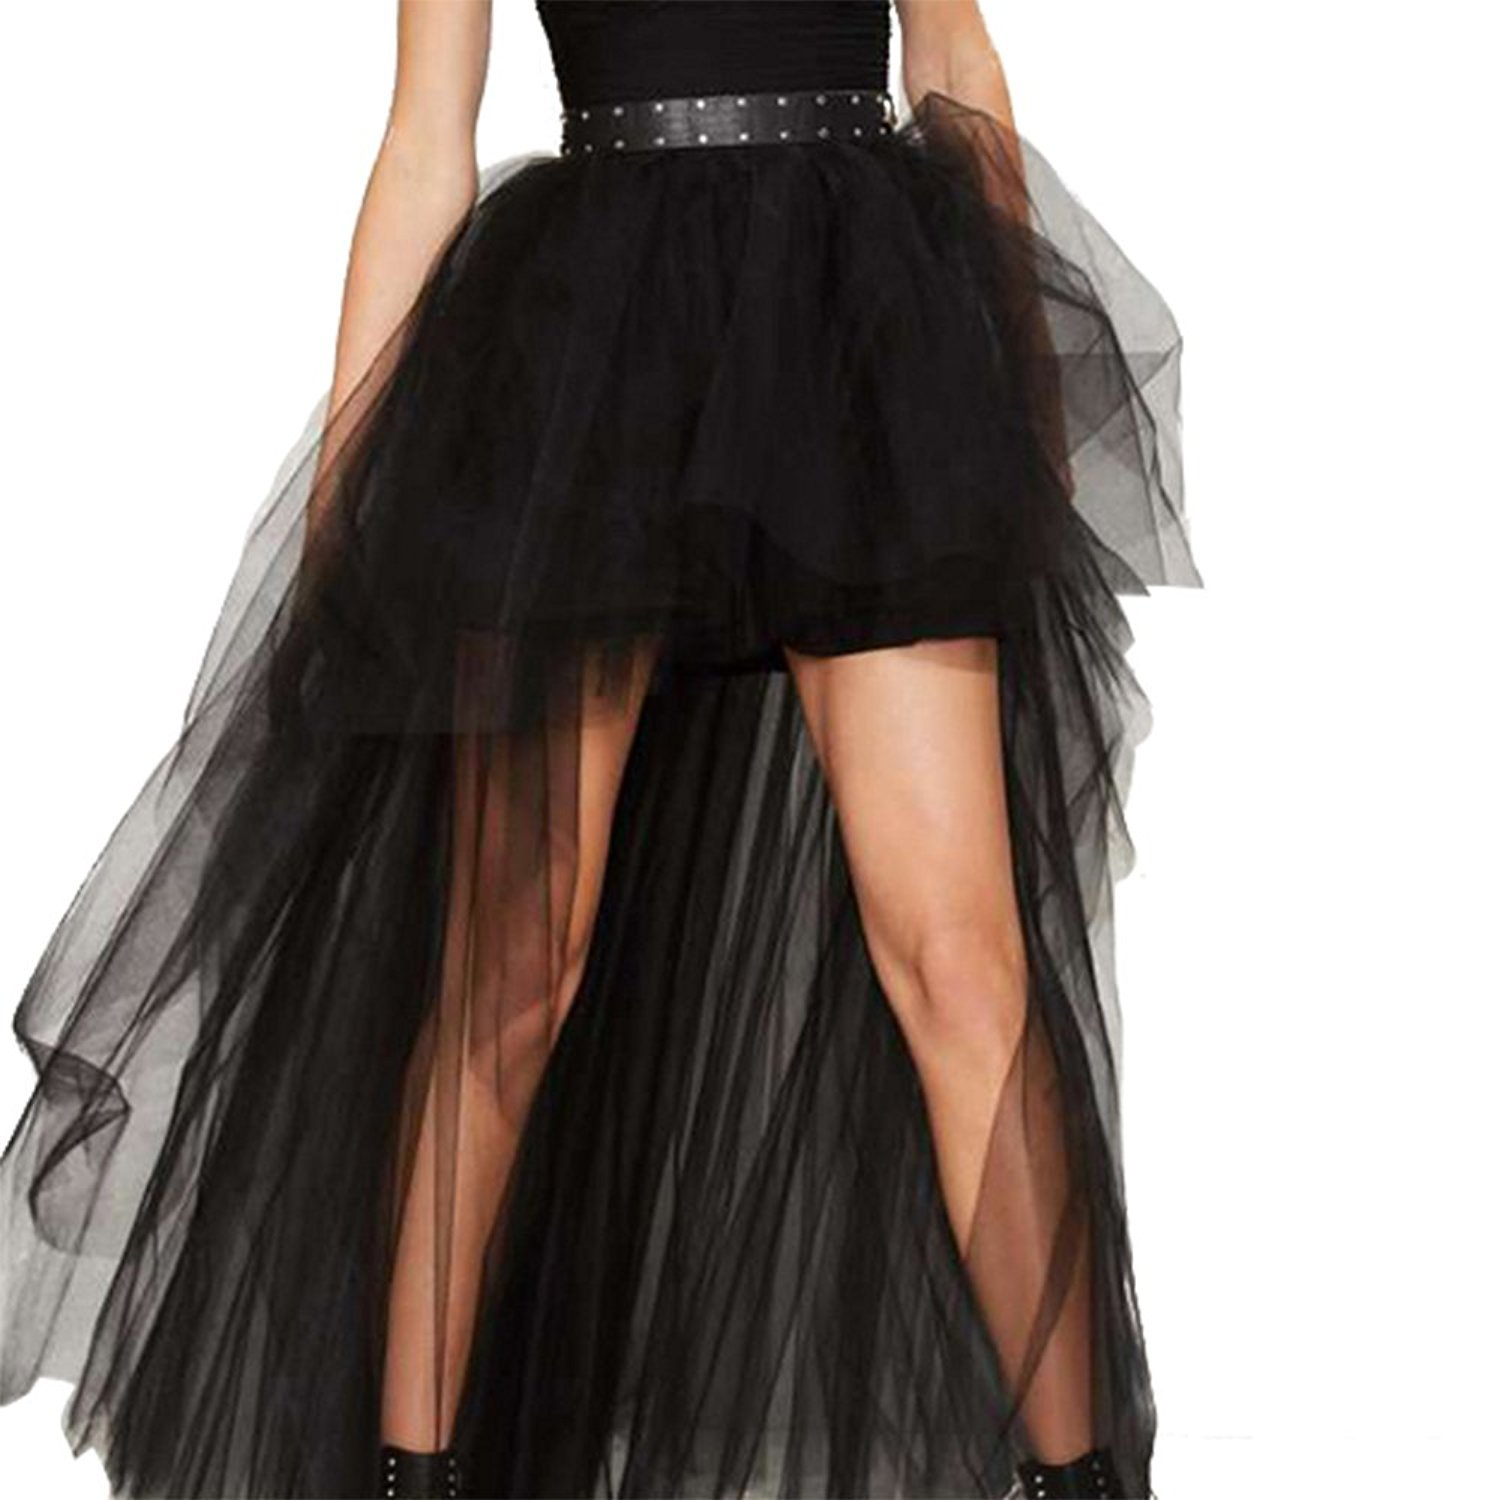 ASMAX HaoDuoYi Women Mesh Tulle High Low High Waist Tutu Princess Wedding Skirt Black by ASMAX